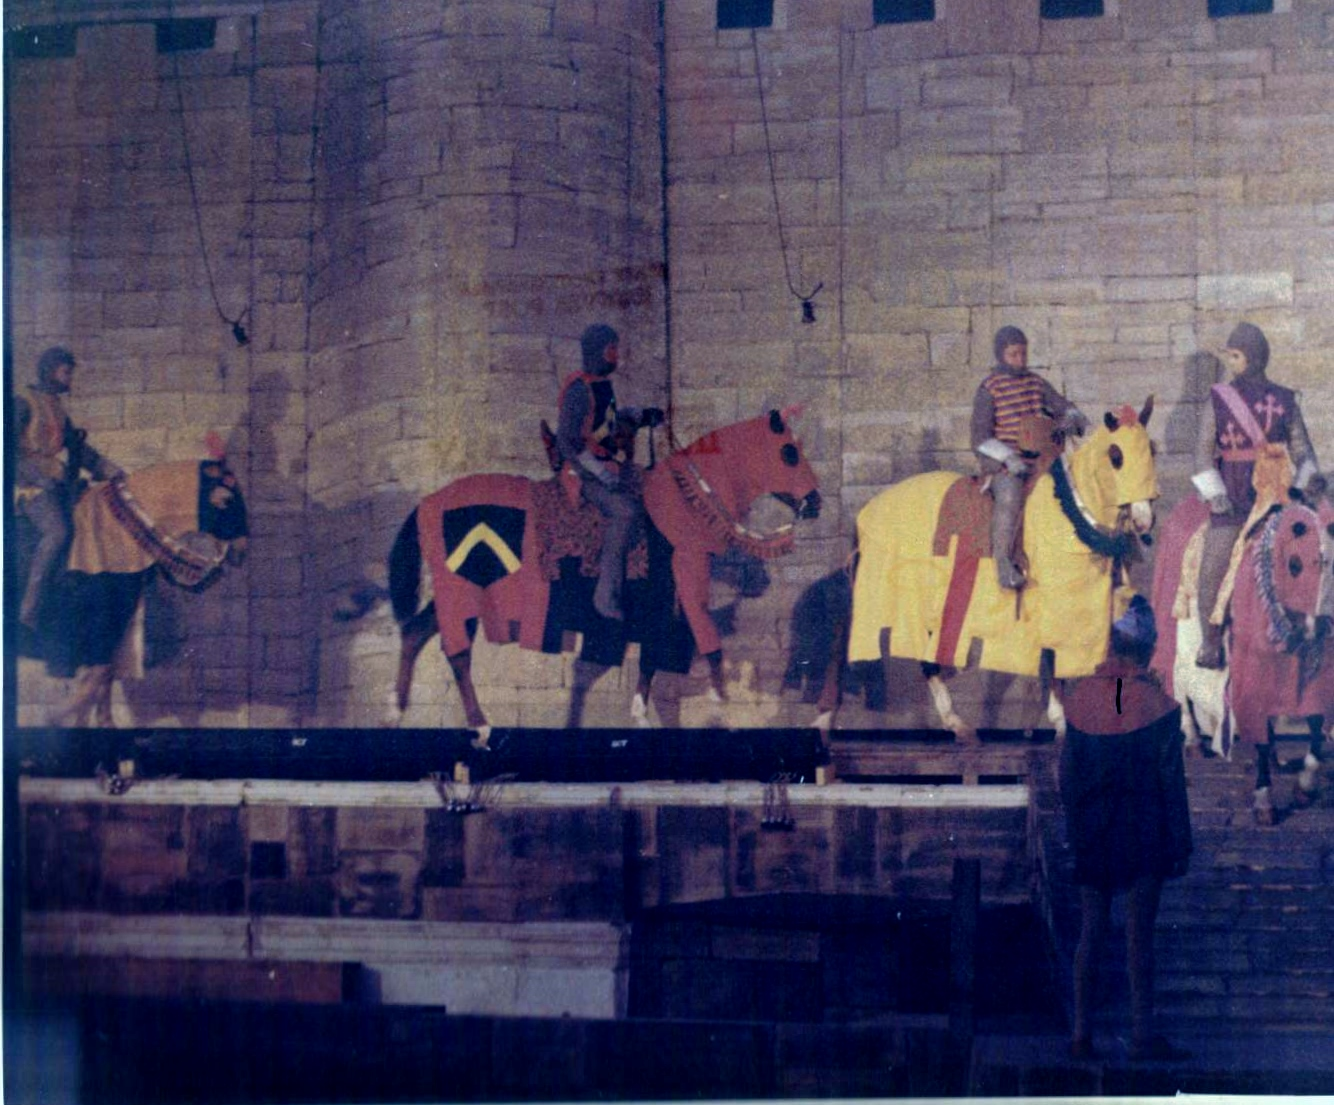 Westernaires riding across the narrow ramps criss-crossing the stage of  Camelot